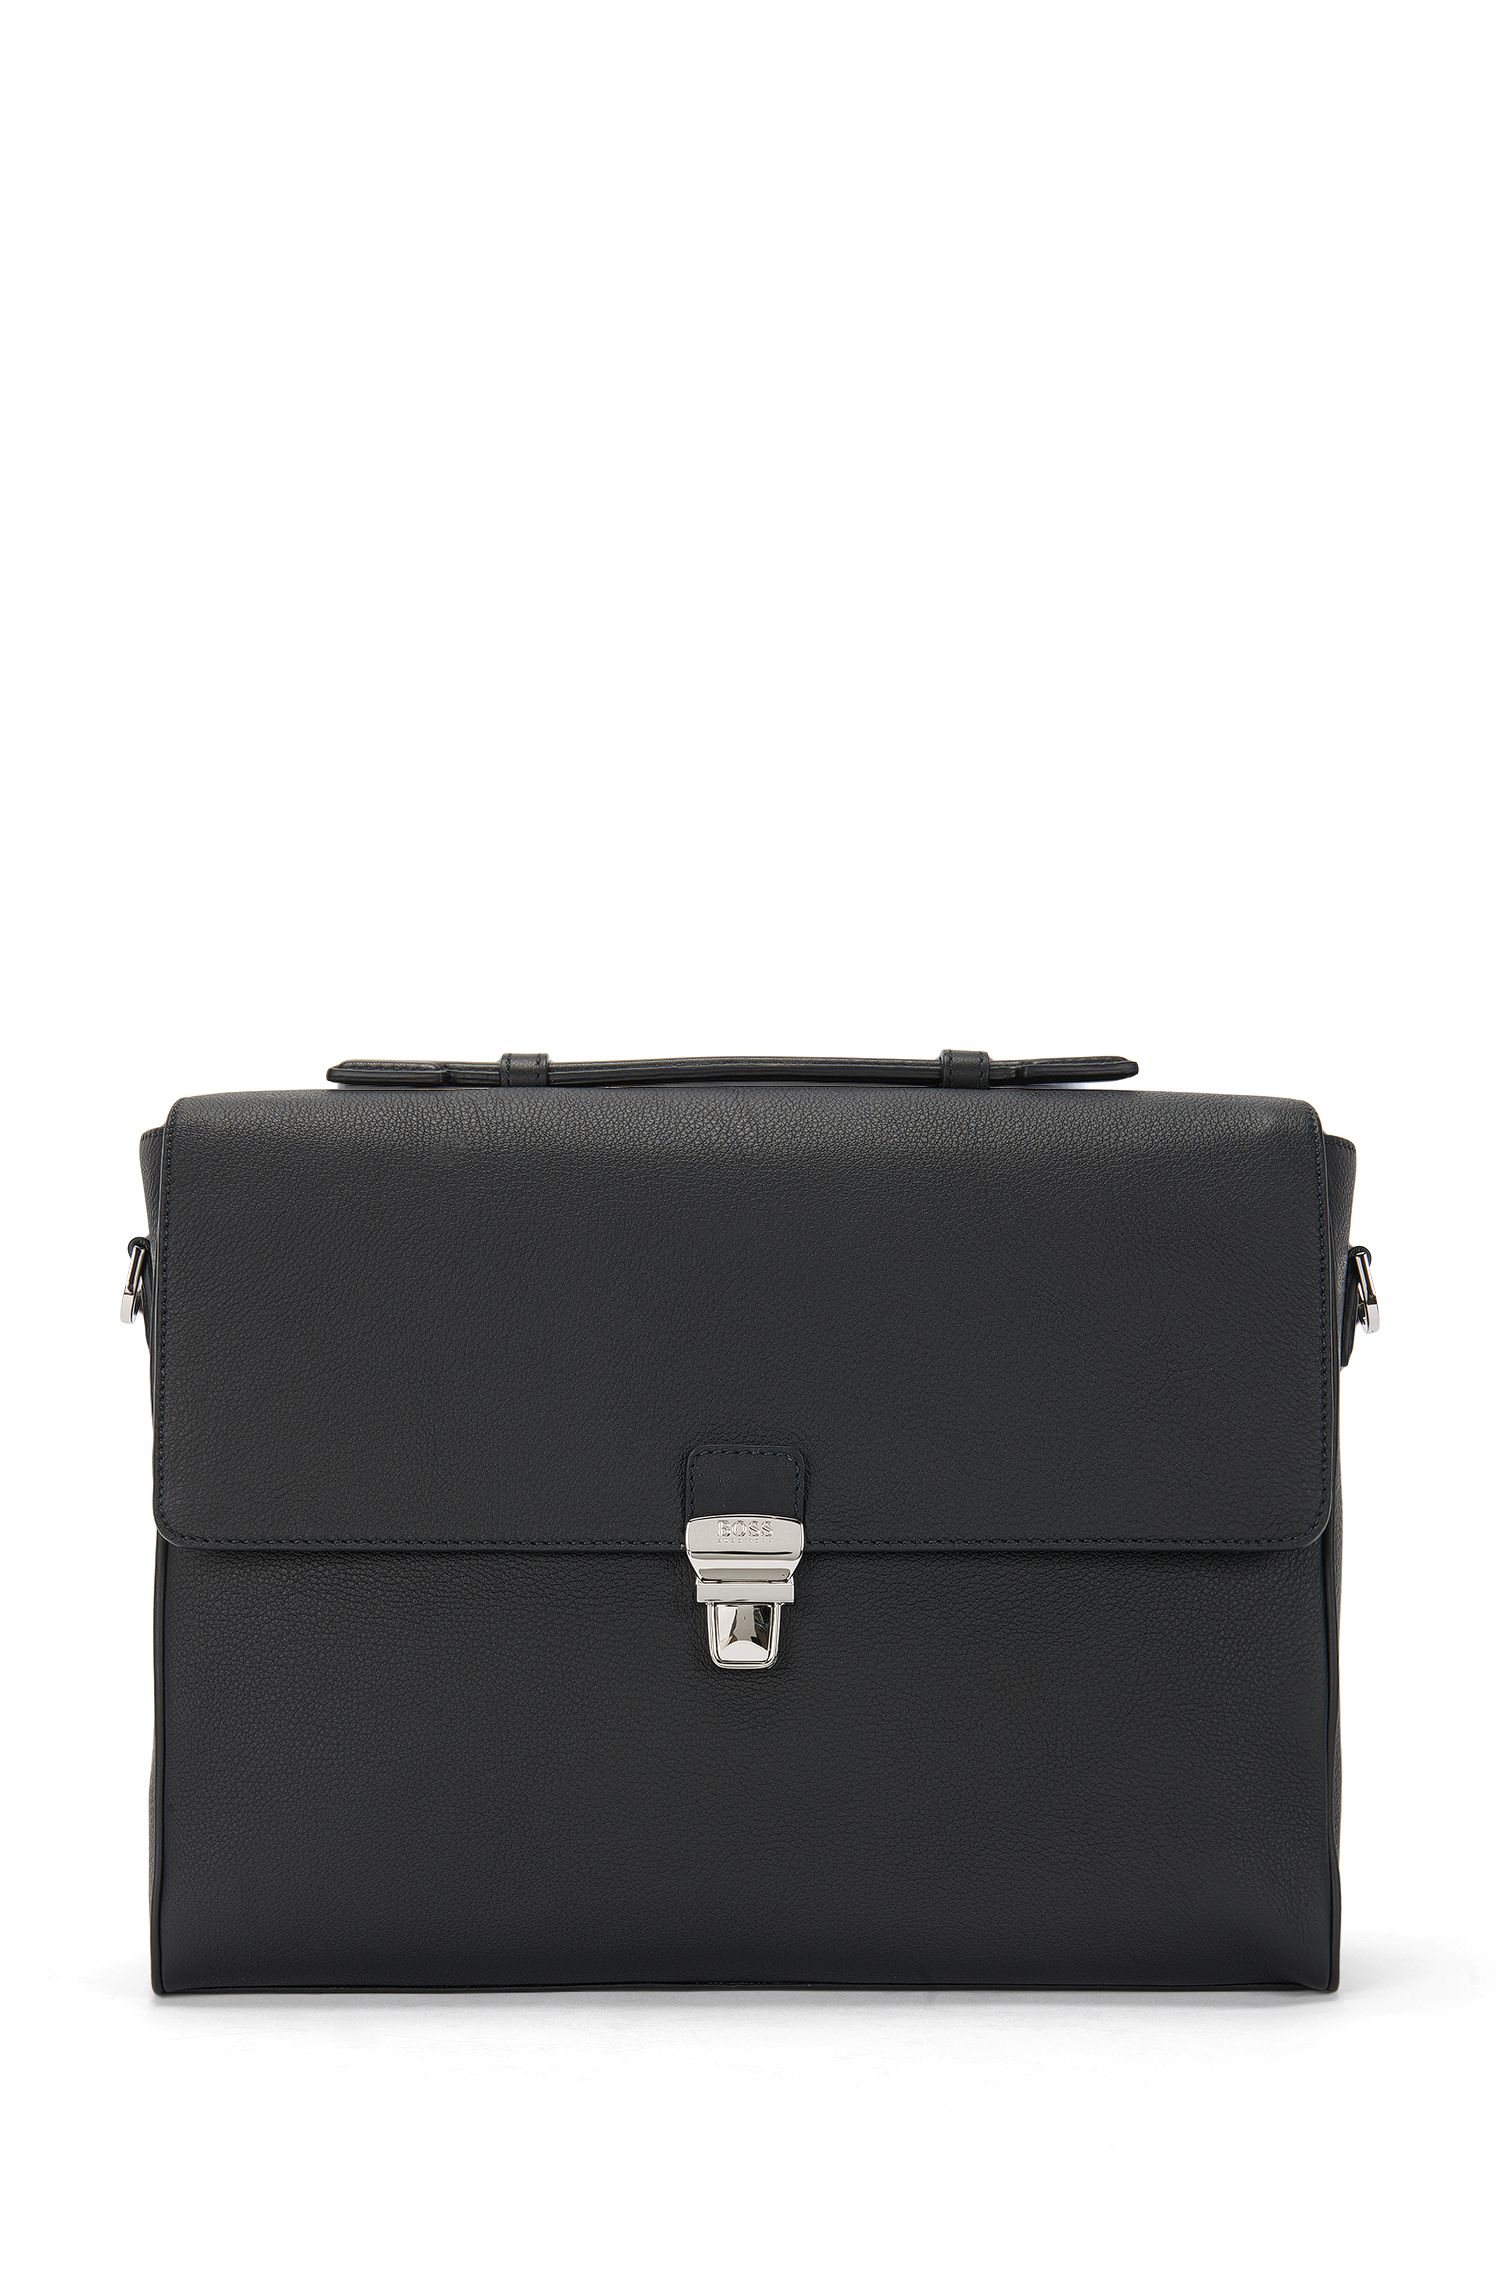 Porte-documents en cuir à bandoulière amovible : « Traveller_Briefcase »